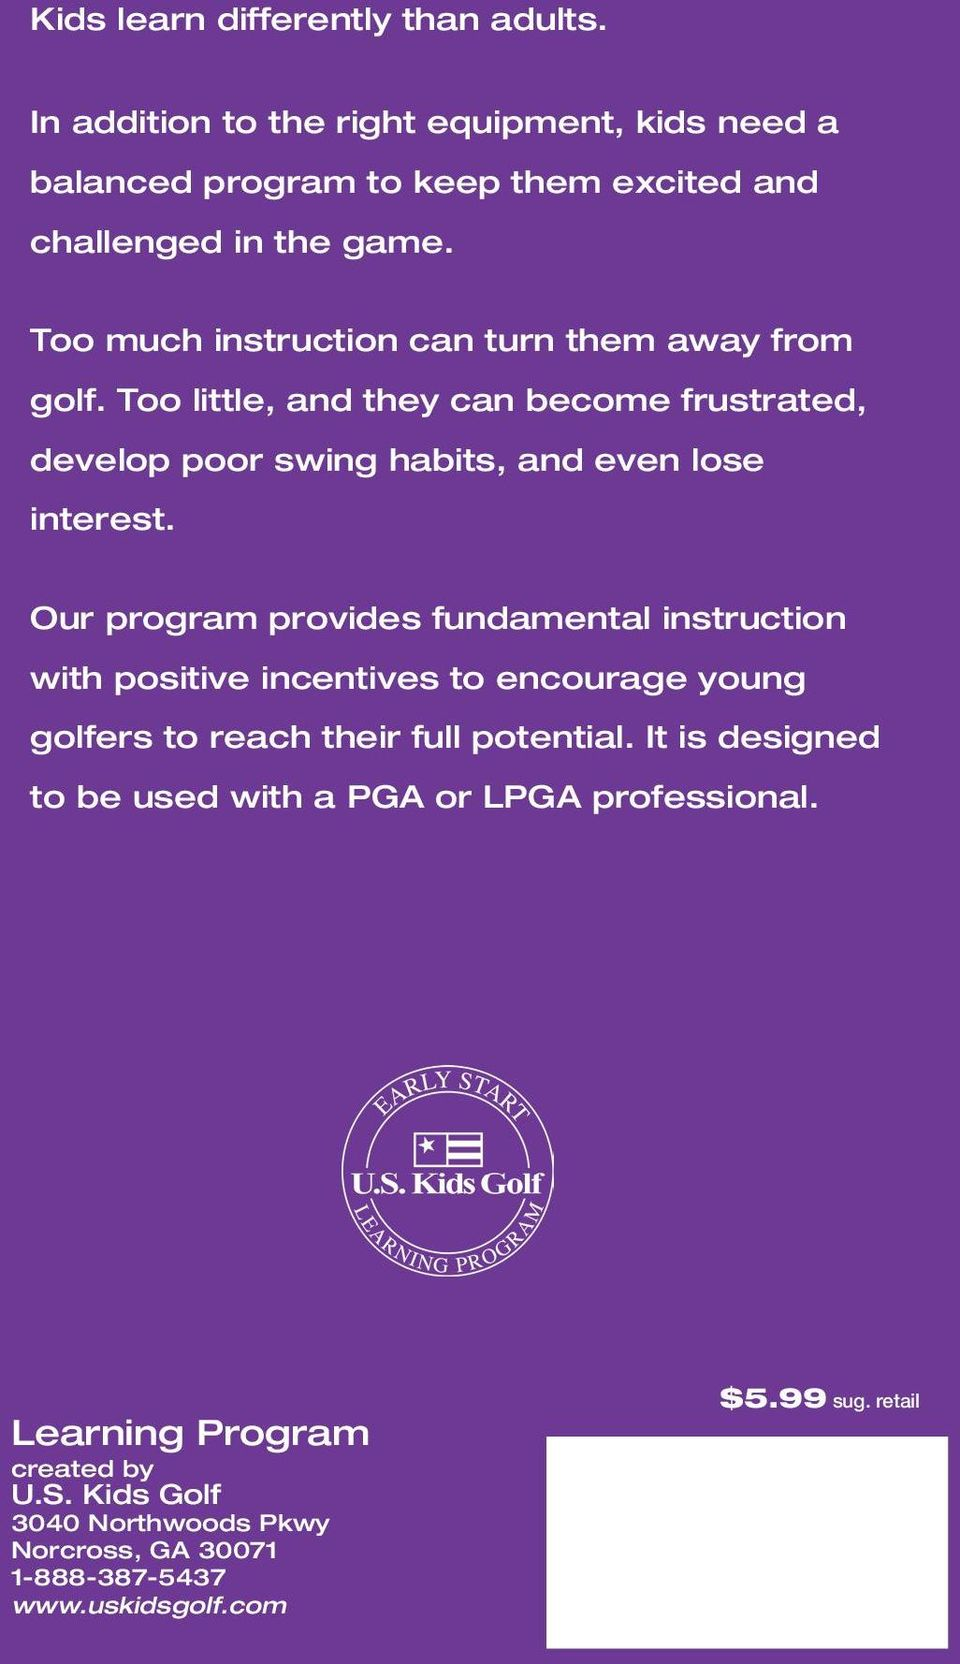 Our program provides fundamental instruction with positive incentives to encourage young golfers to reach their full potential.